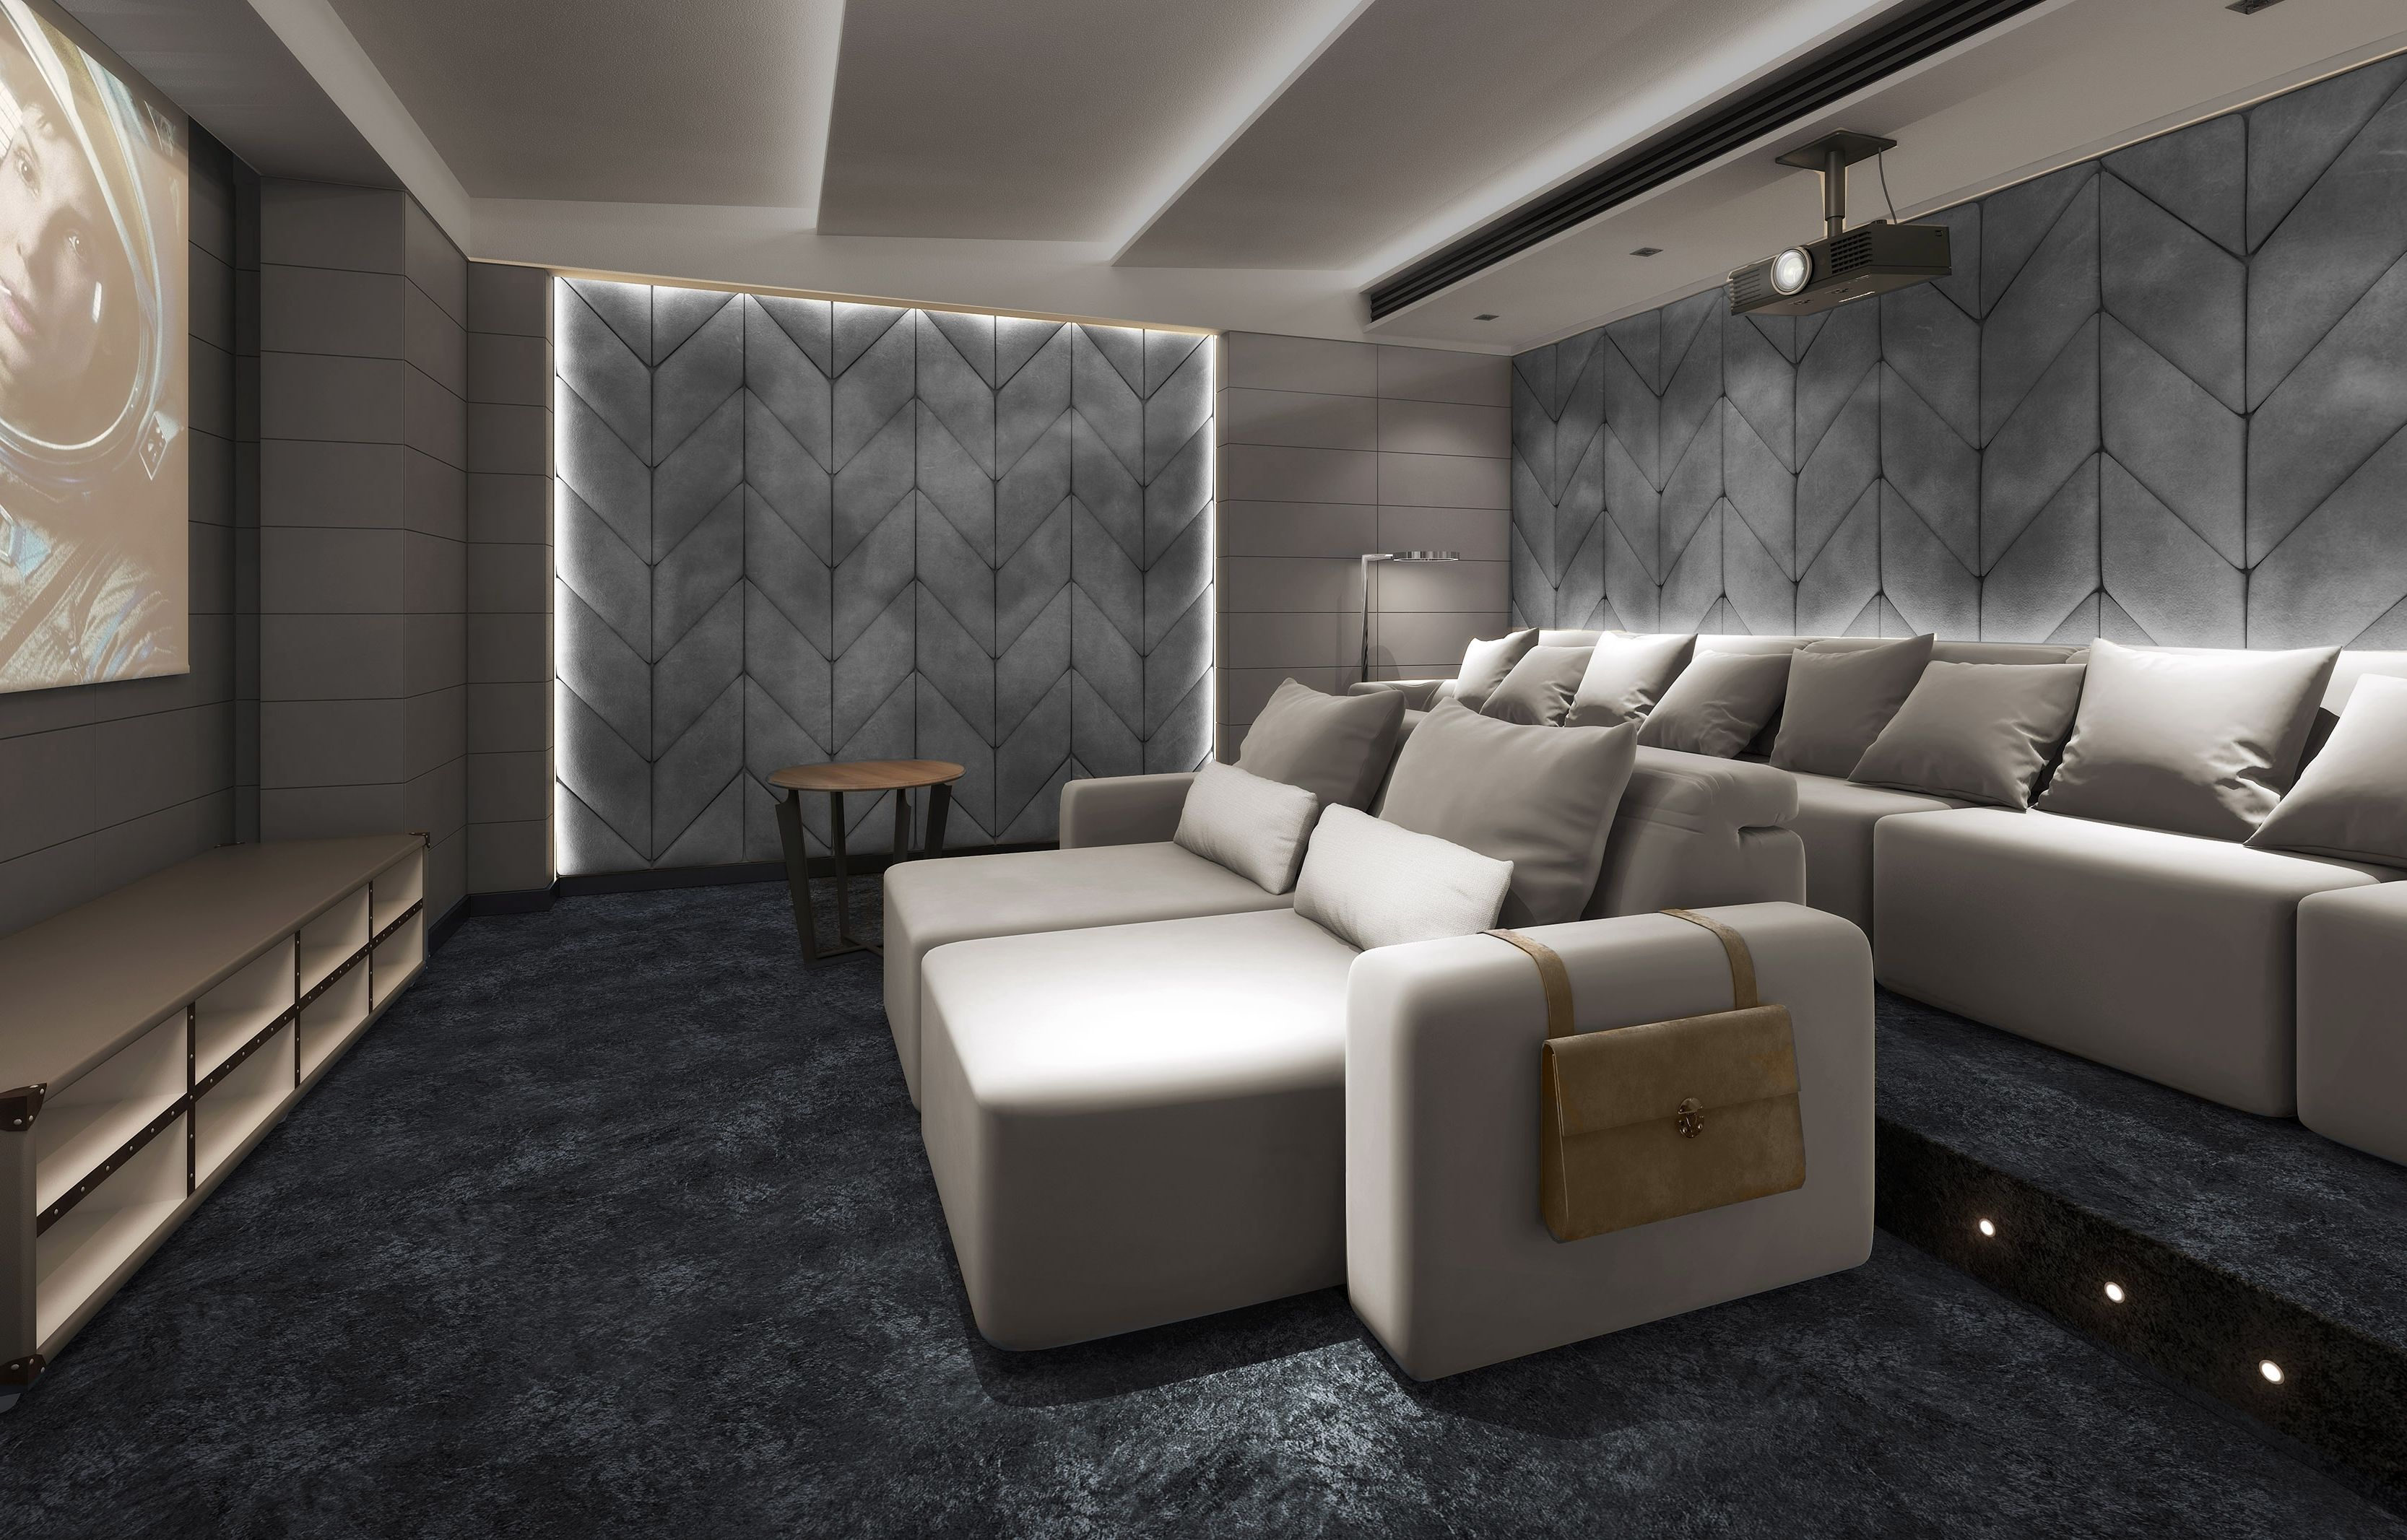 Luxury Cinema Room with cinema seating that is like no other These